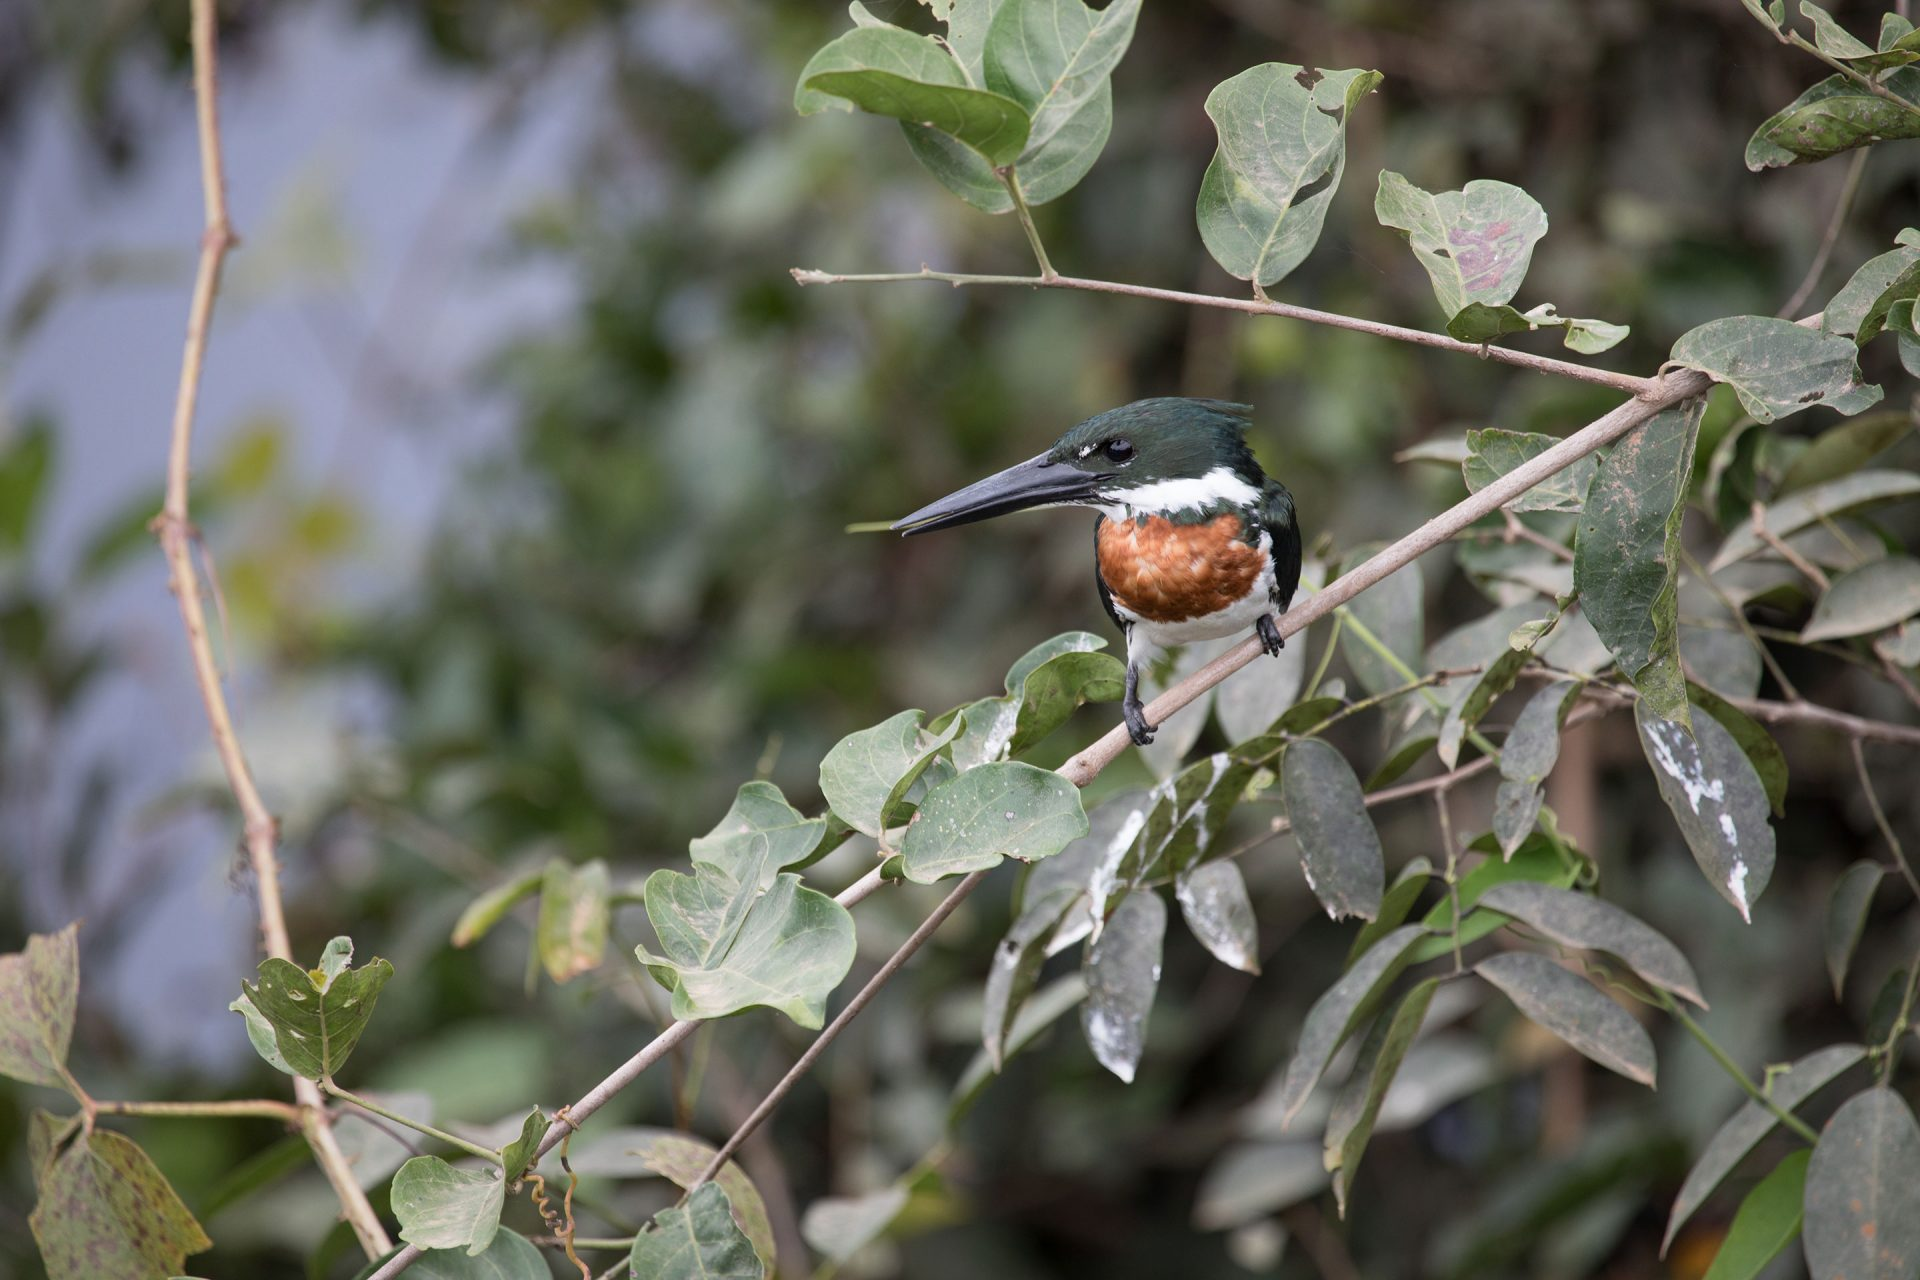 Male Amazon Kingfisher